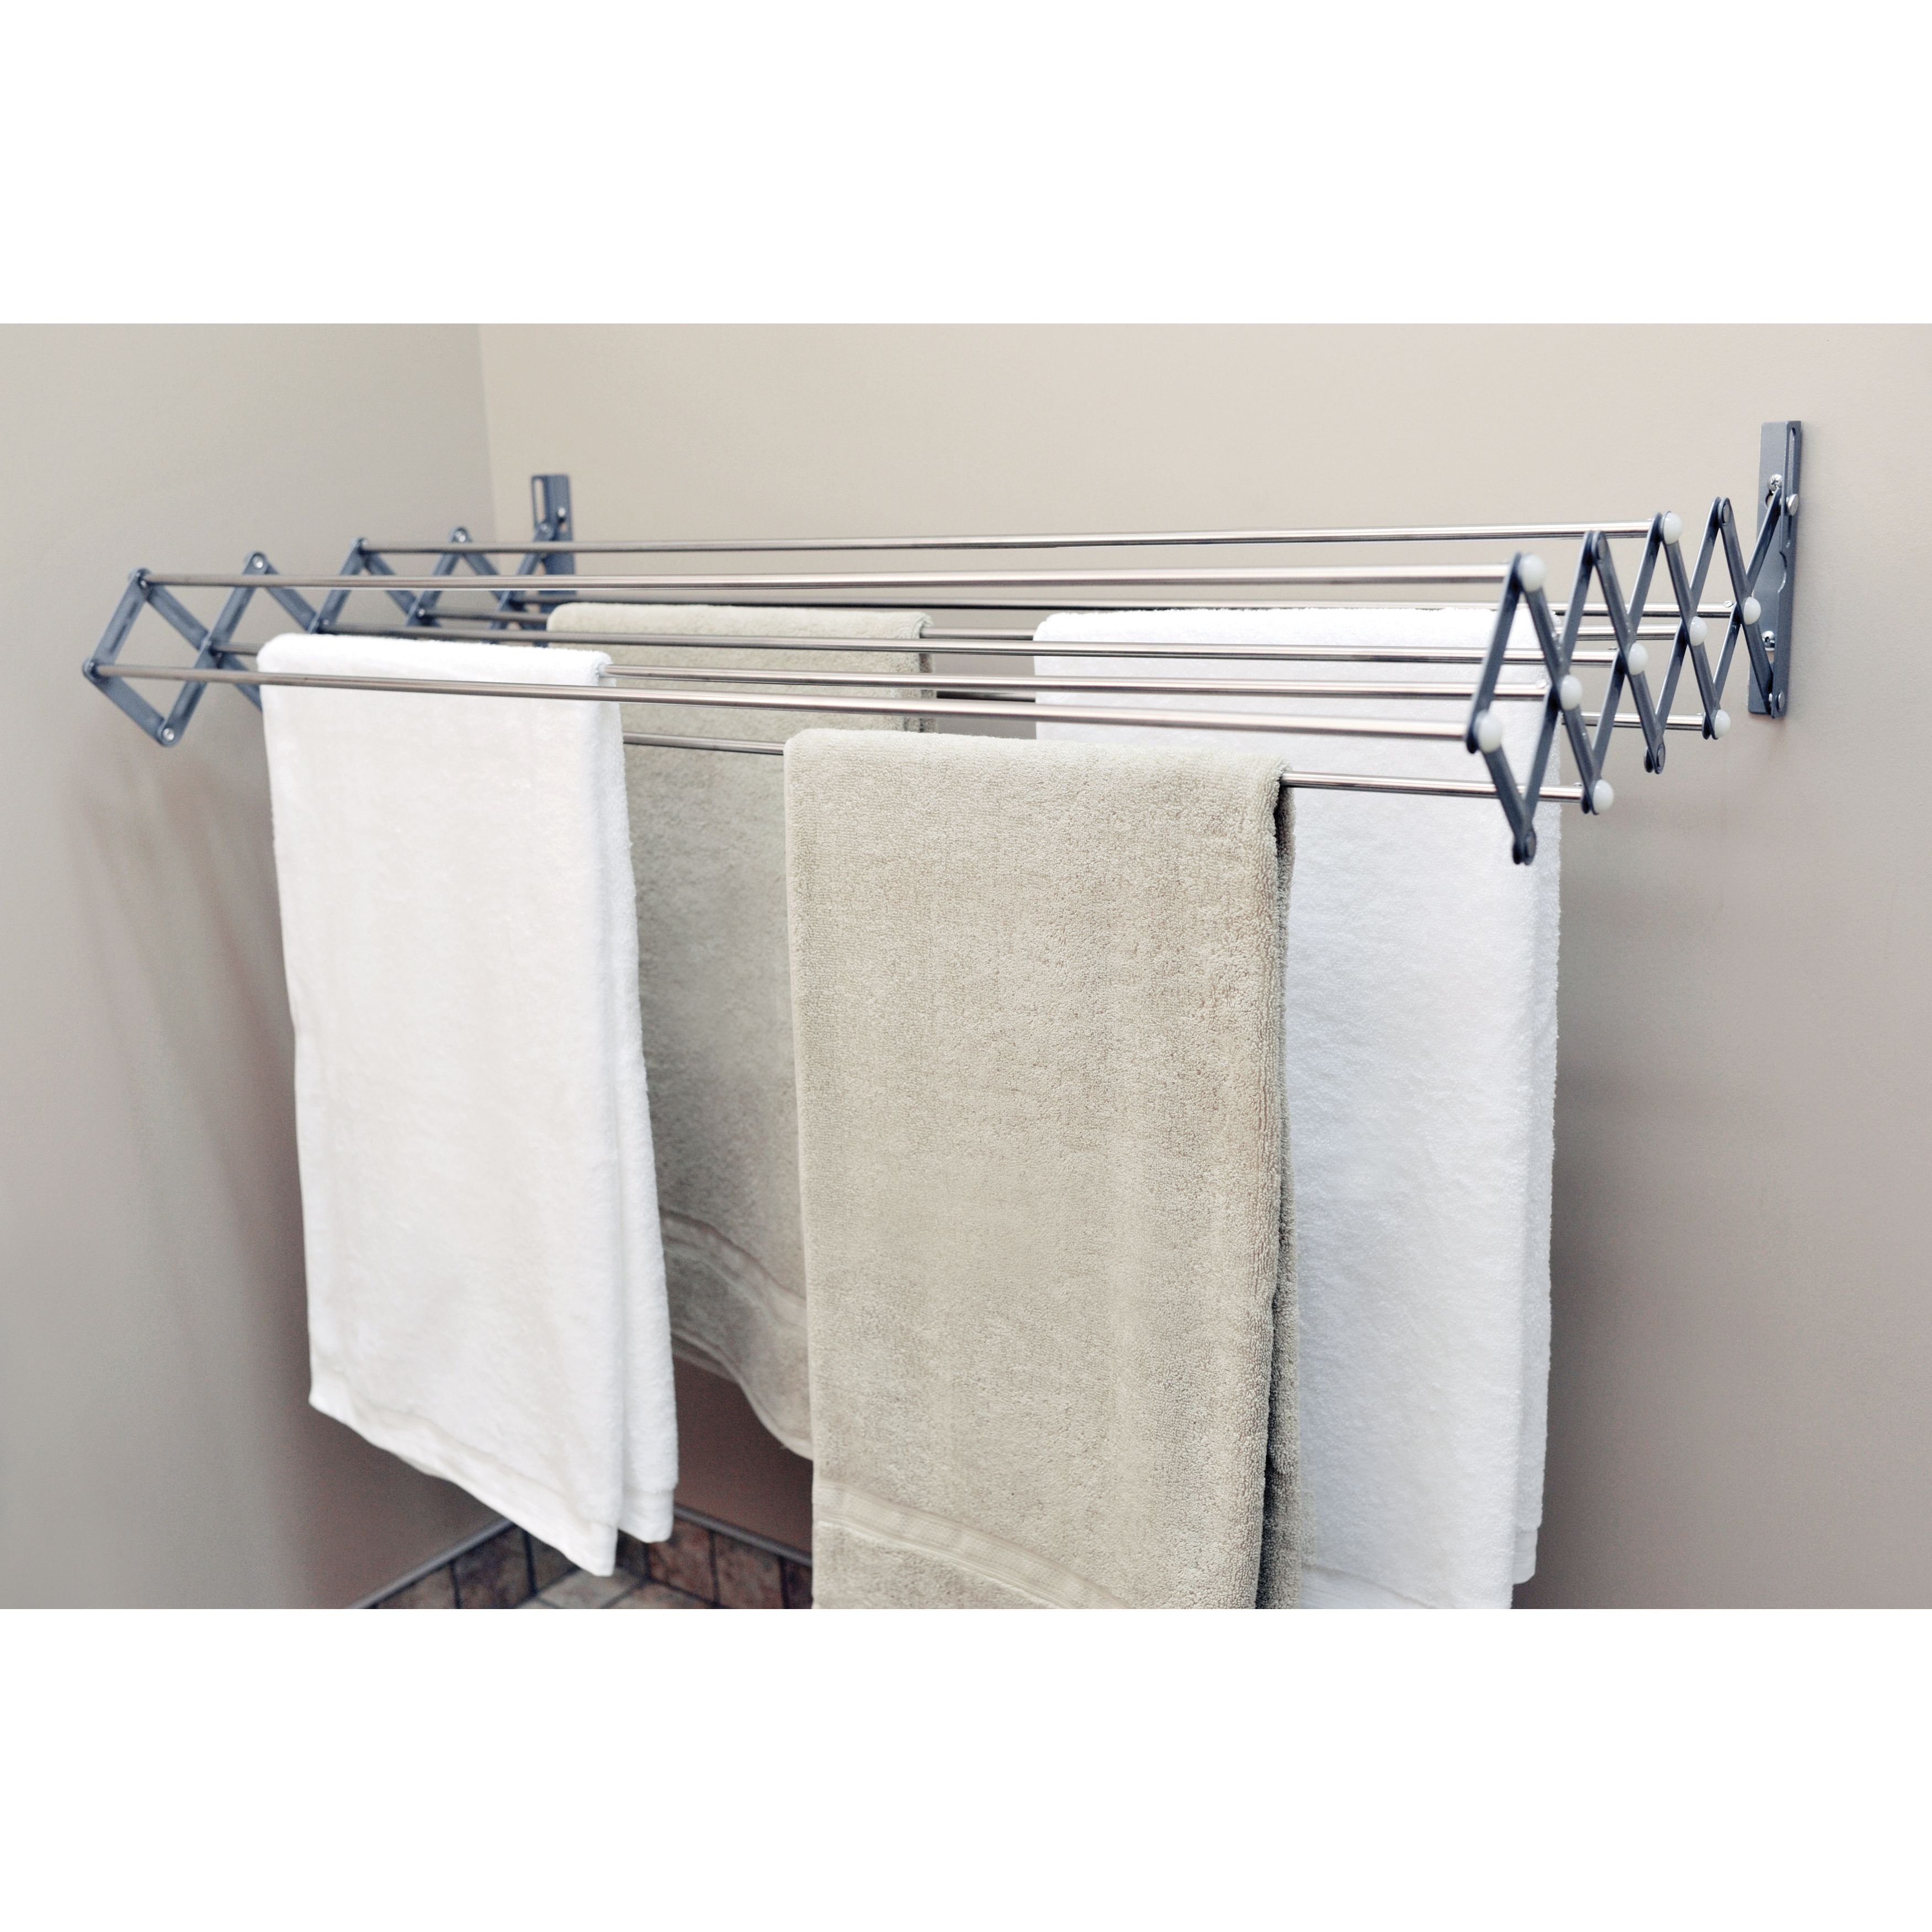 Overstock Com Online Shopping Bedding Furniture Electronics Jewelry Clothing More Laundry Room Organization Drying Rack Laundry Laundry Room Storage